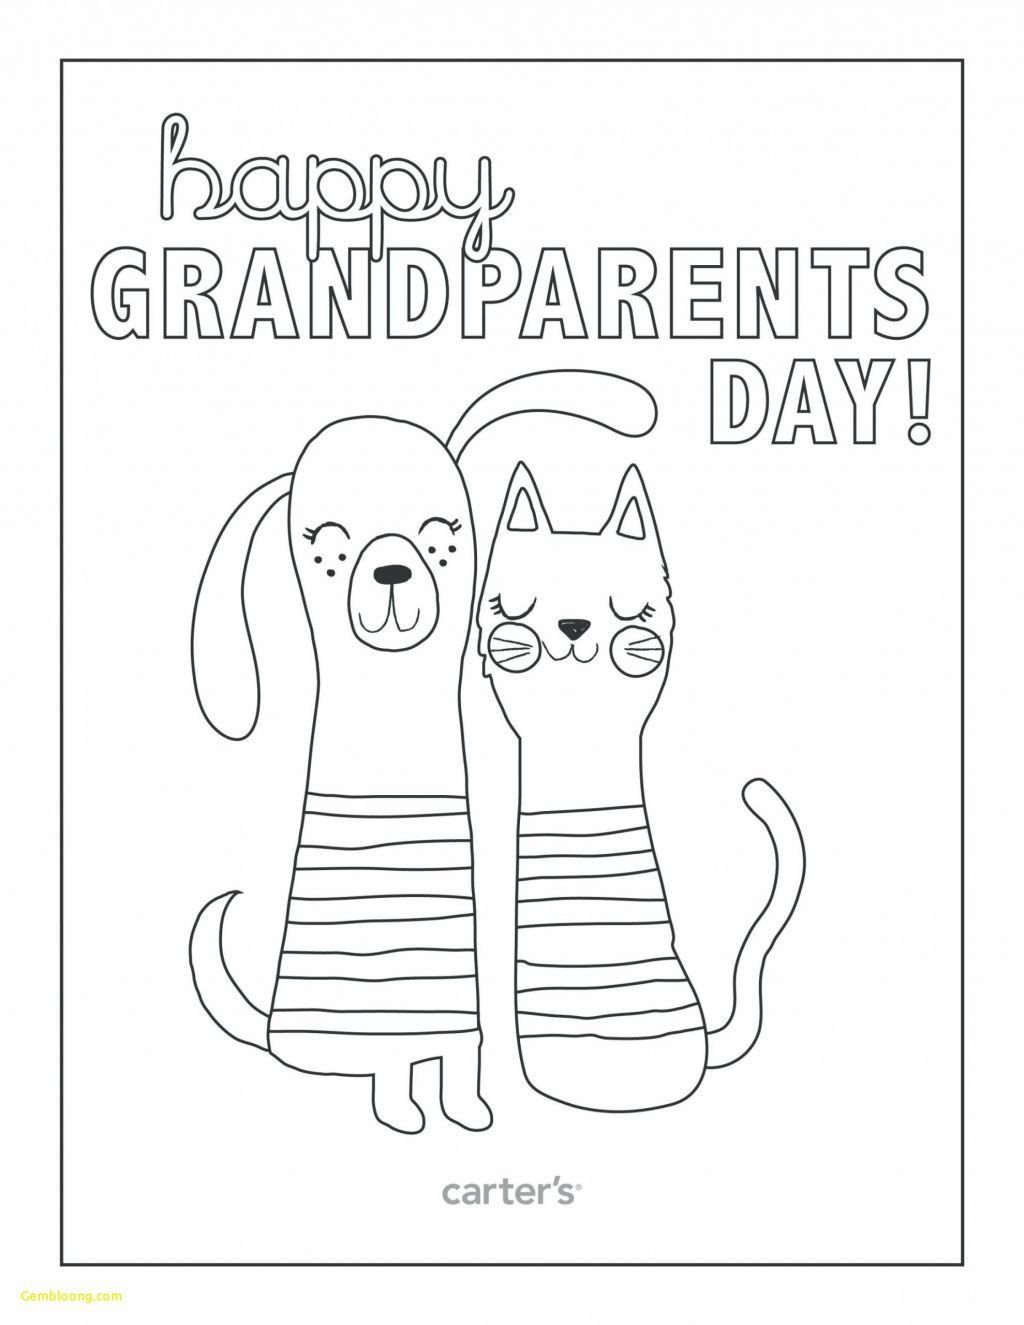 Grandparents Day Printable Coloring Pages Coloring Pages Grandparents Coloring Pages In 2020 Birthday Coloring Pages Grandparents Day Crafts Mothers Day Coloring Pages